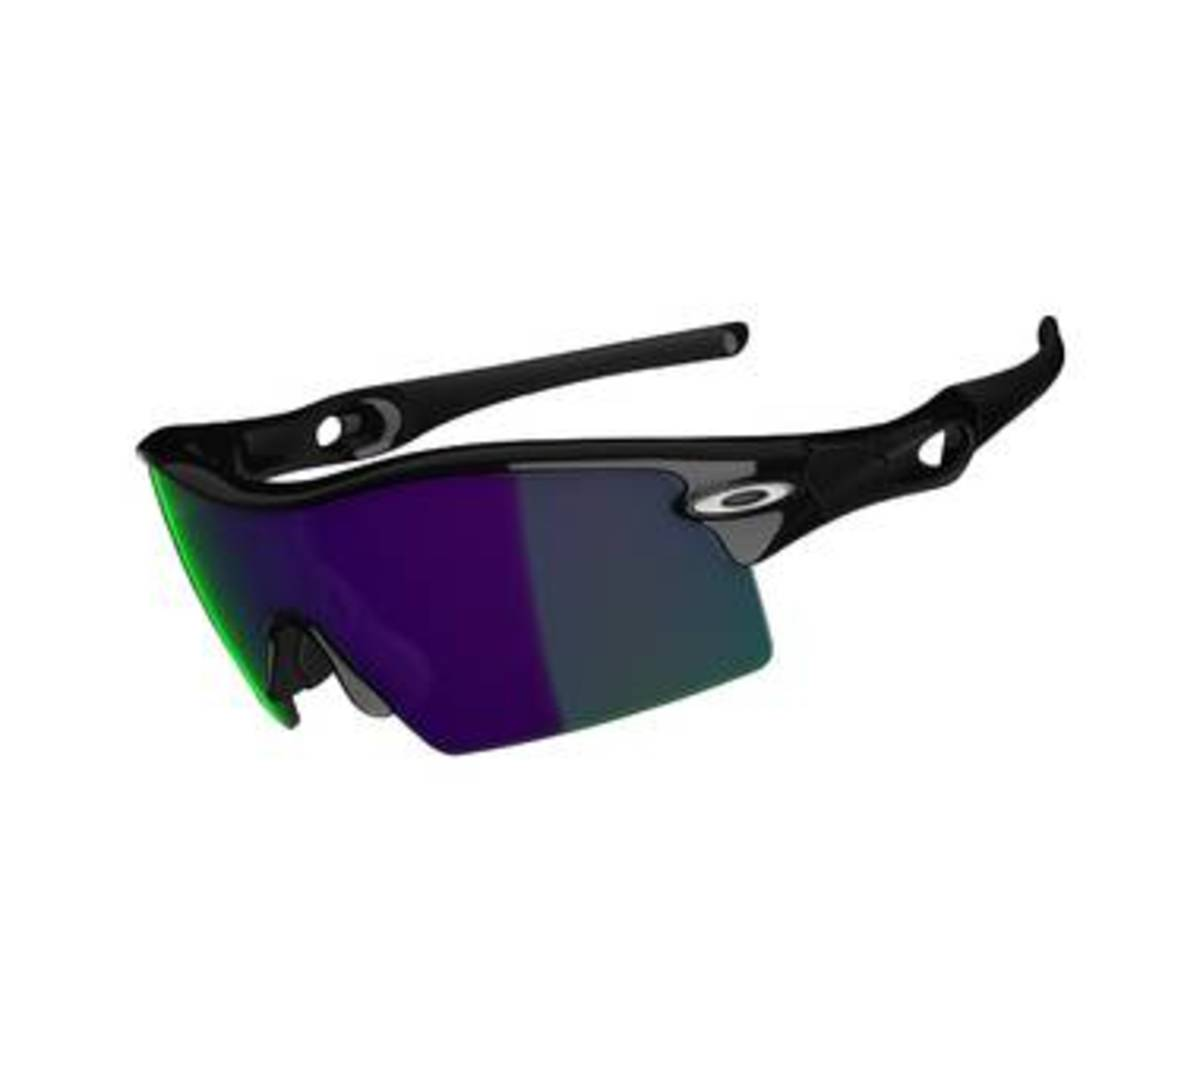 oakley bags amazon qrpv  How to tell if / Spot Fake or real Oakley Sunglasses / are fake Oakleys   hubpages